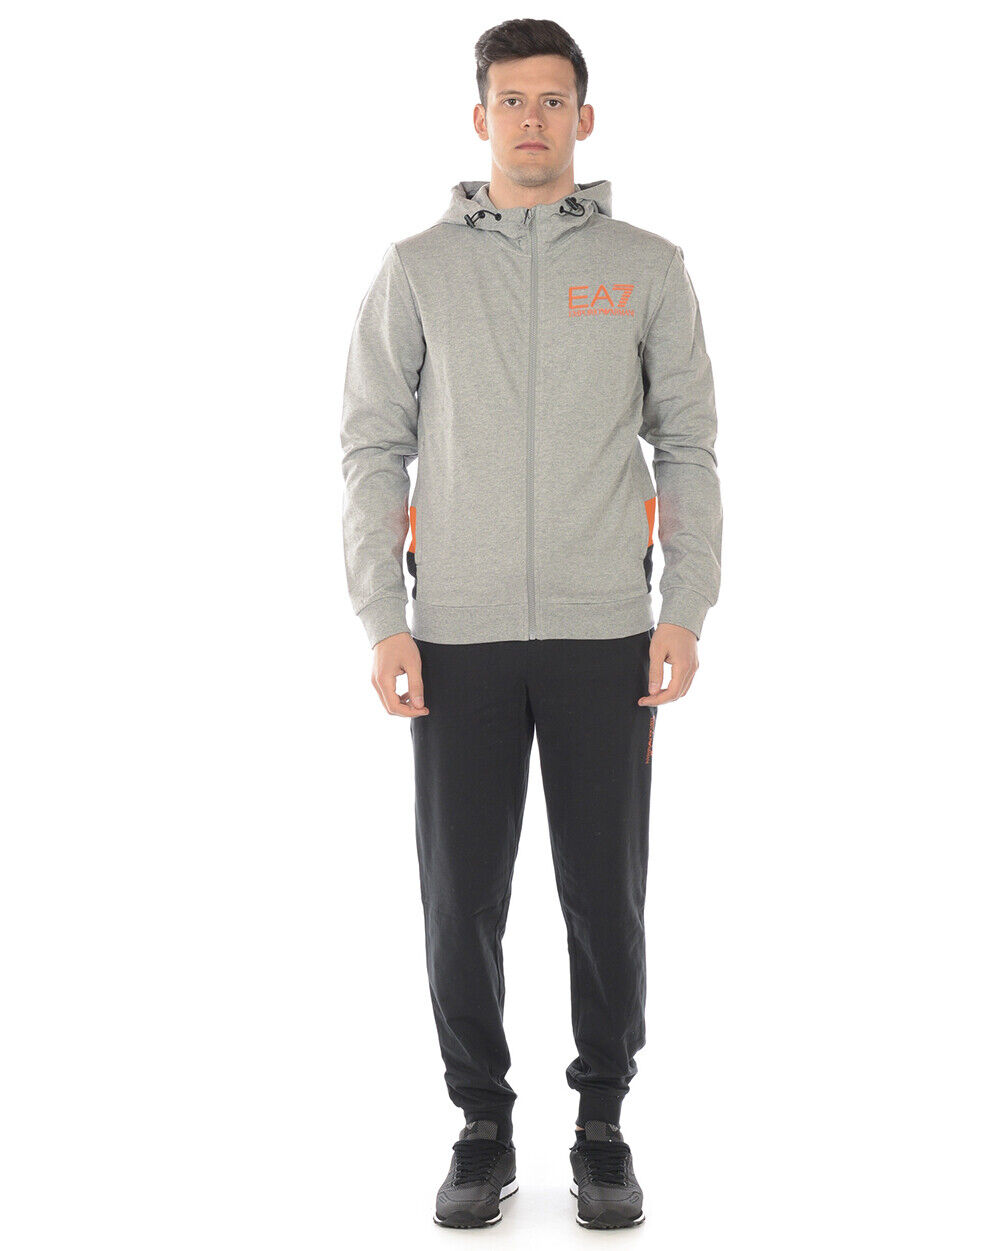 Emporio Armani Ea7 Tracksuit Cotton Man grau 3GPV68 PJ05Z 29BM Sz. S PUT OFFER